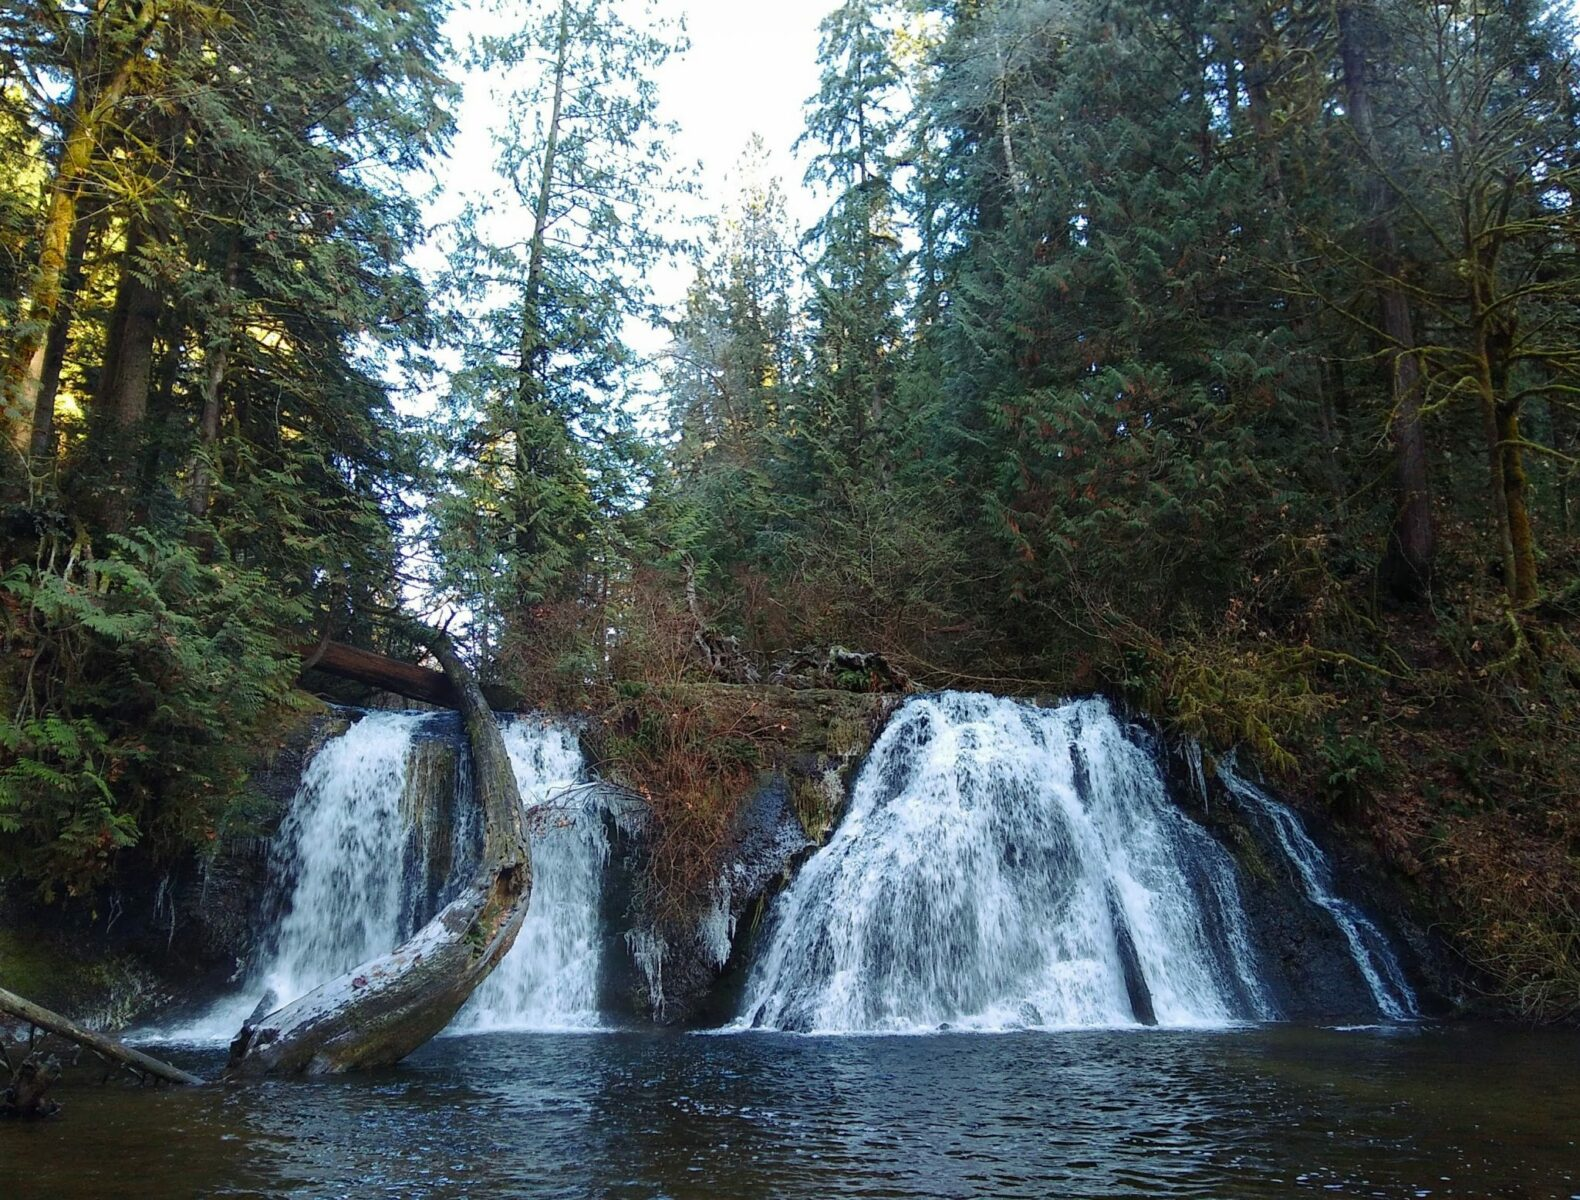 A beautiful winter hike near Seattle is Cherry Creek Falls. It has two sides that plunge over a rock into a pool below. The waterfall is surrounded by evergreen trees and ferns.